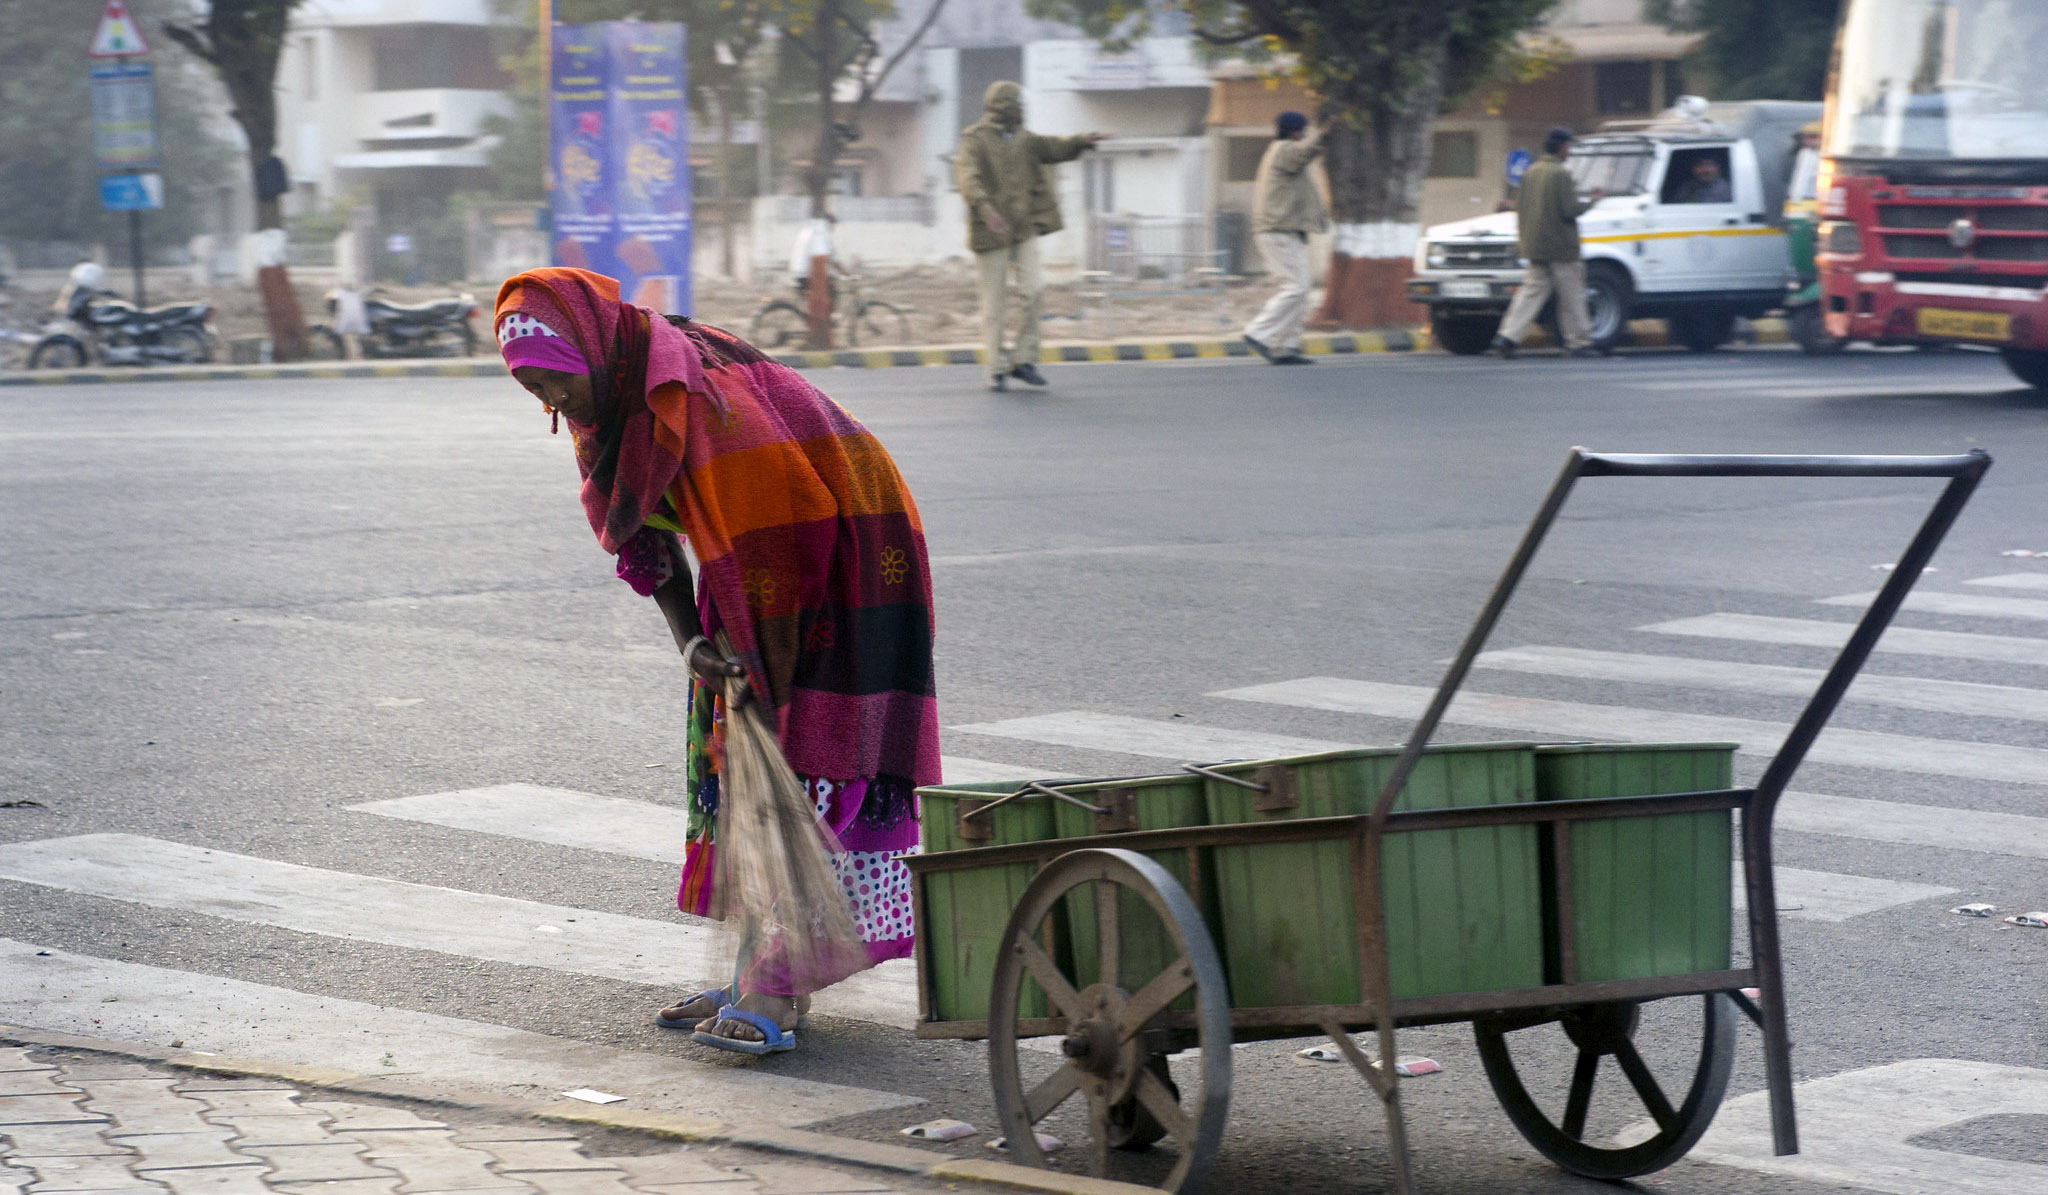 Woman is shown sweeping the street near a cart on the road.